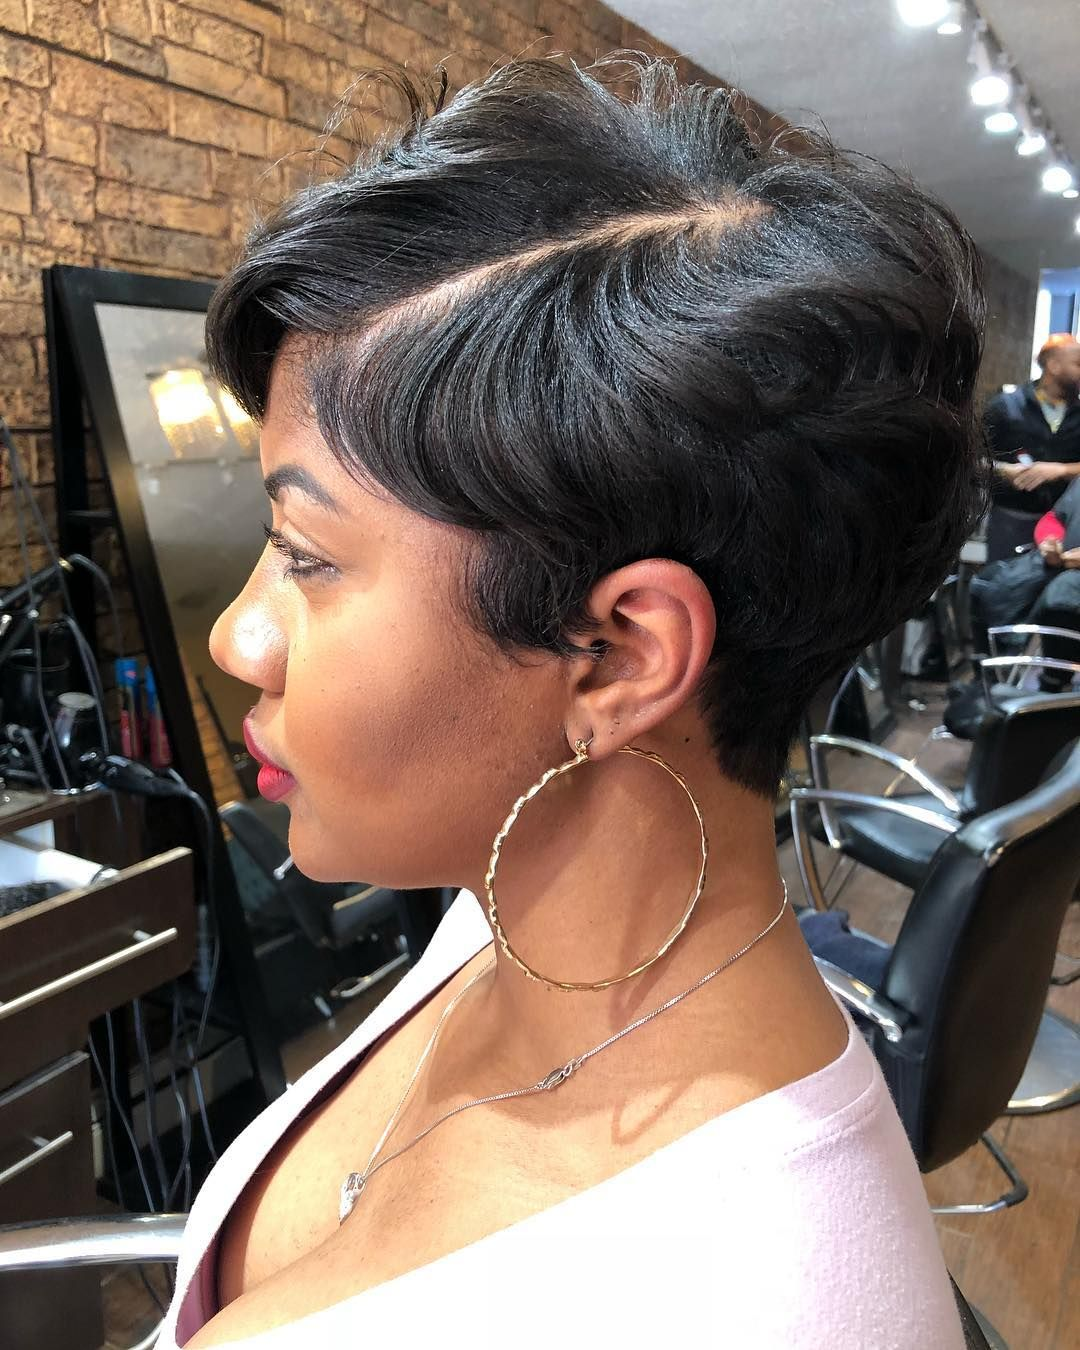 Pin by nikky on jazzy haircuts pinterest hair styles short hair